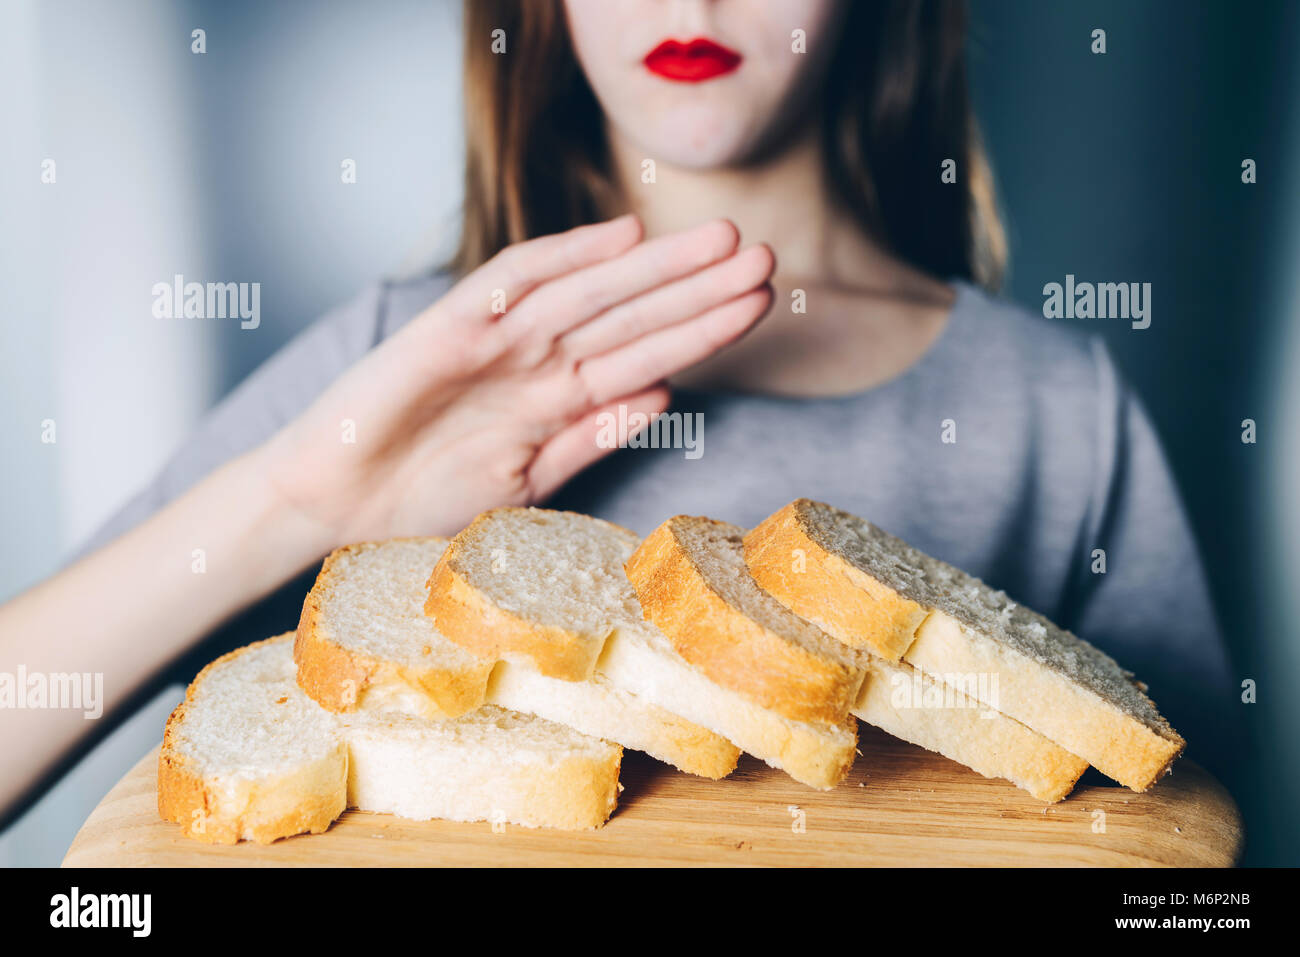 Gluten intolerance and diet concept. Young girl refuses to eat white bread - Stock Image